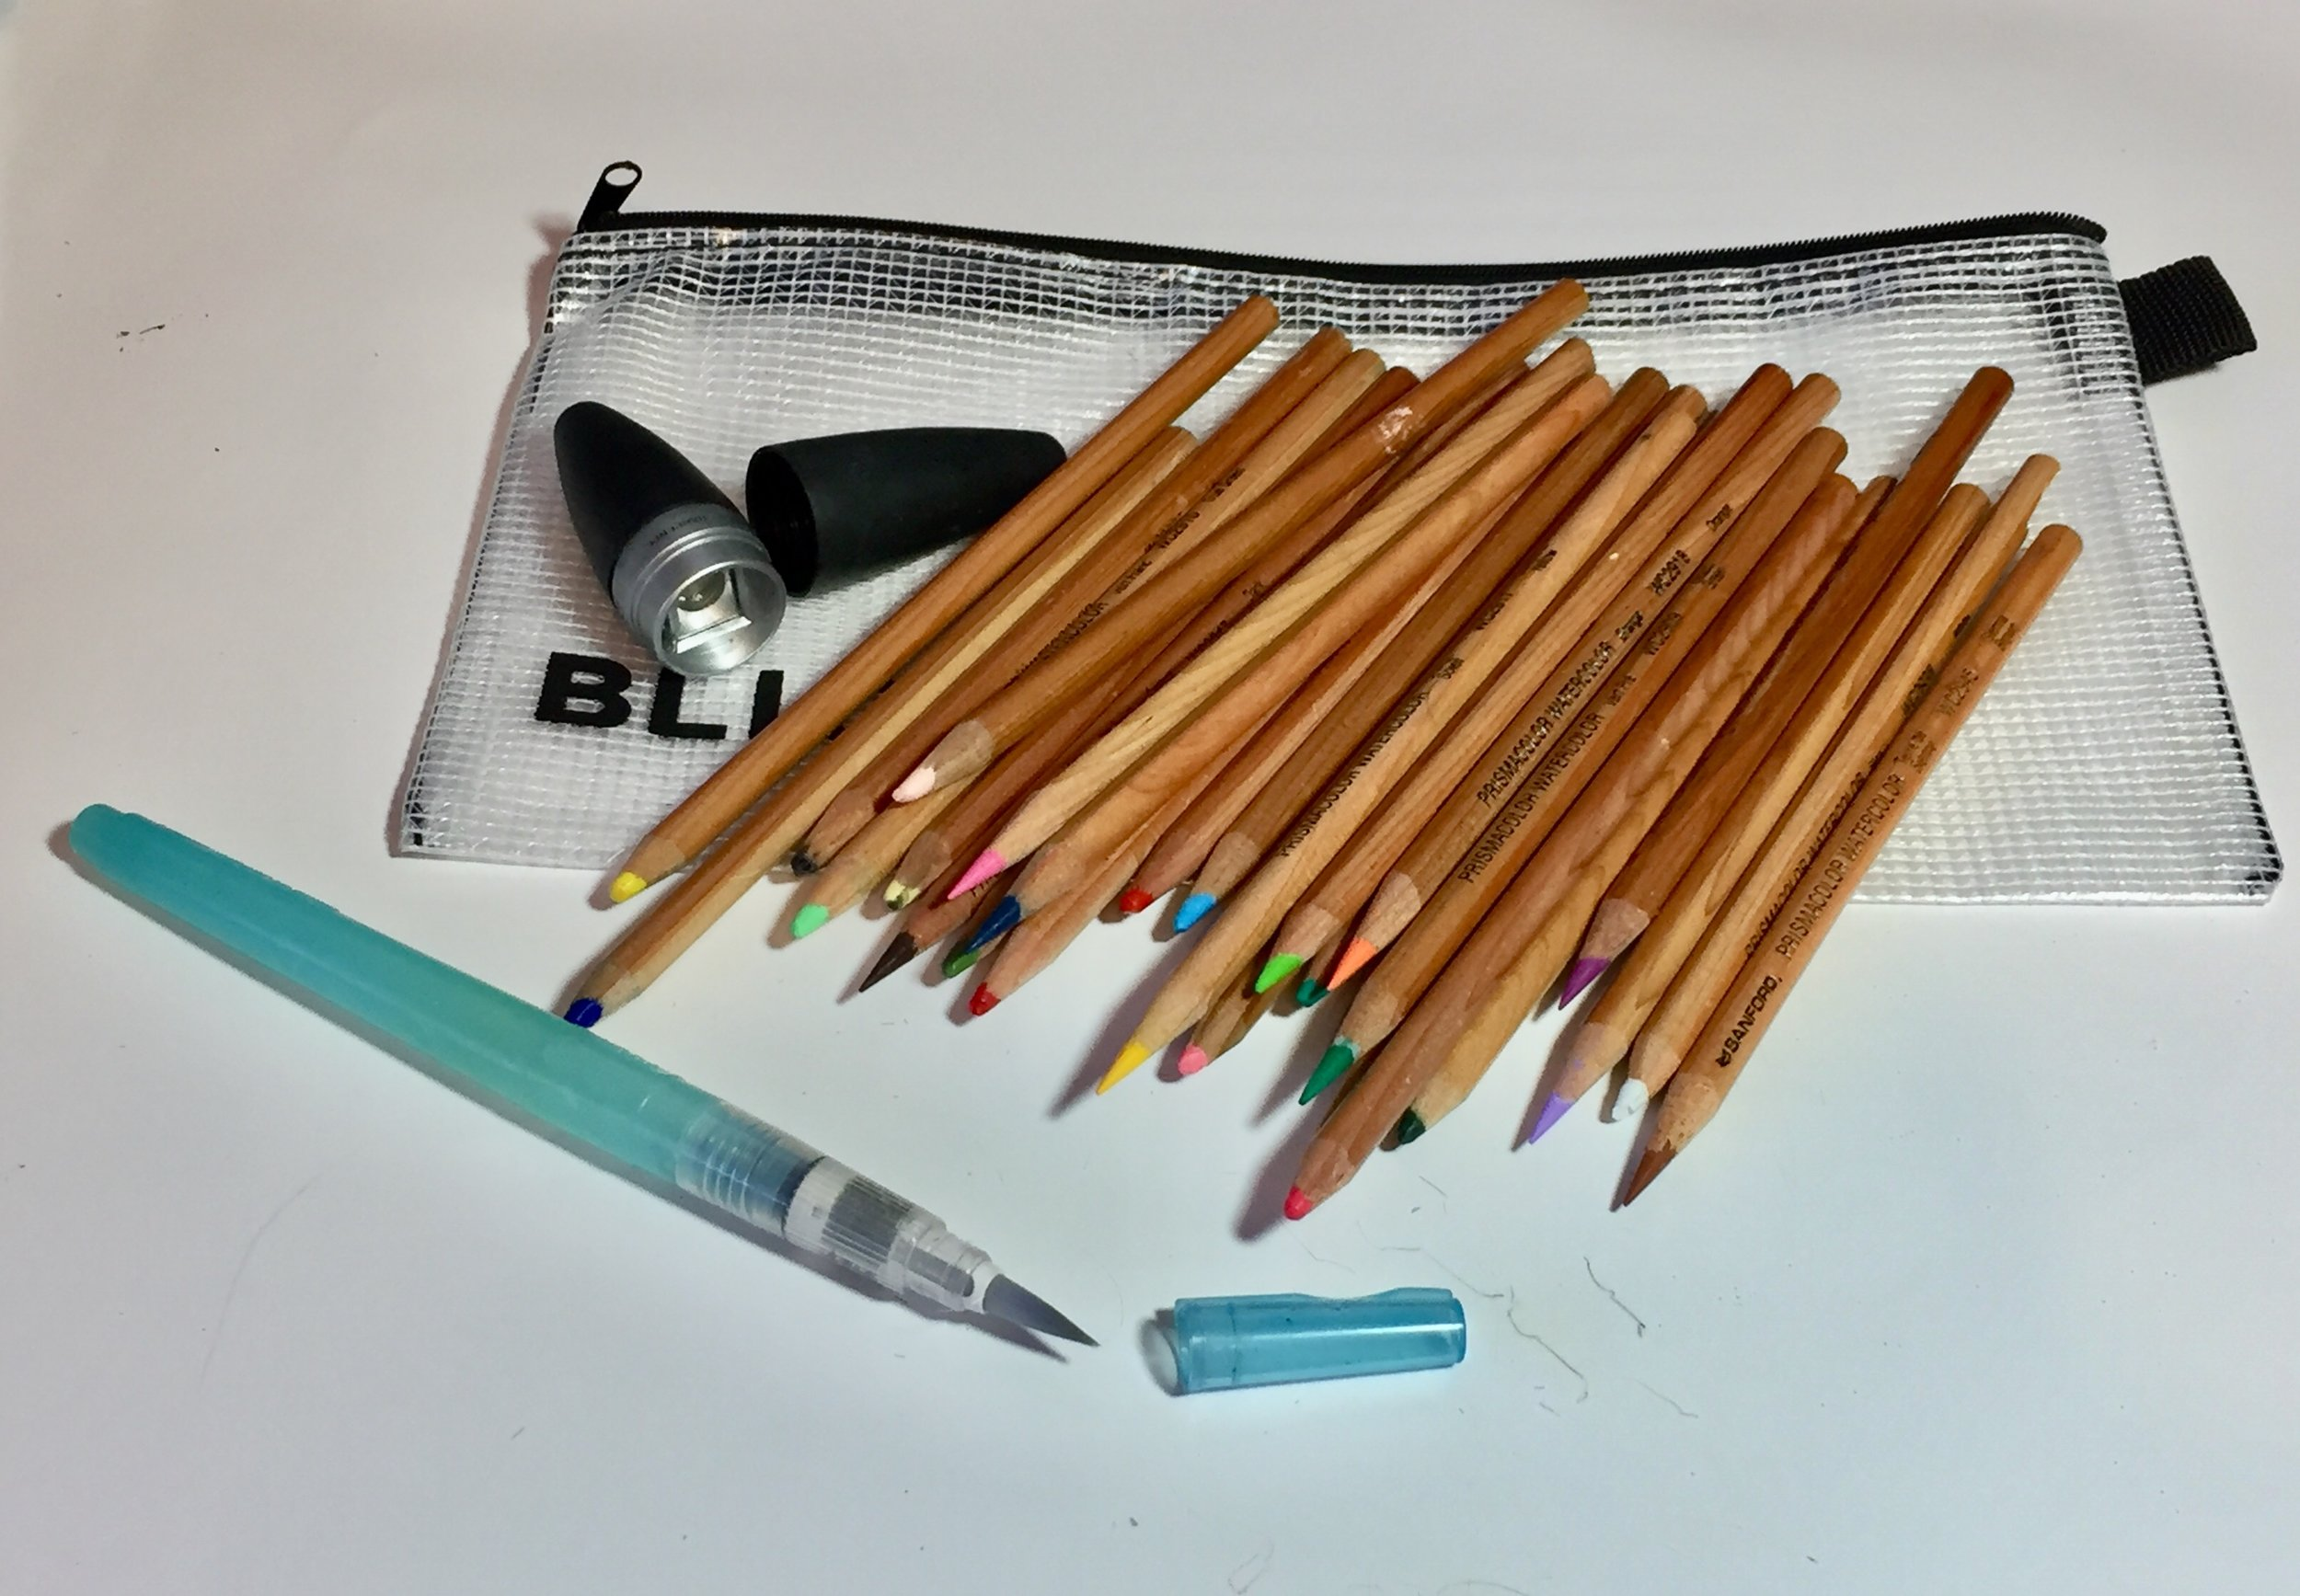 Prismacolor Watercolor Pencils, Niji Waterbrush, Kum Ellipse Sharpener, and DickBlick Pouch